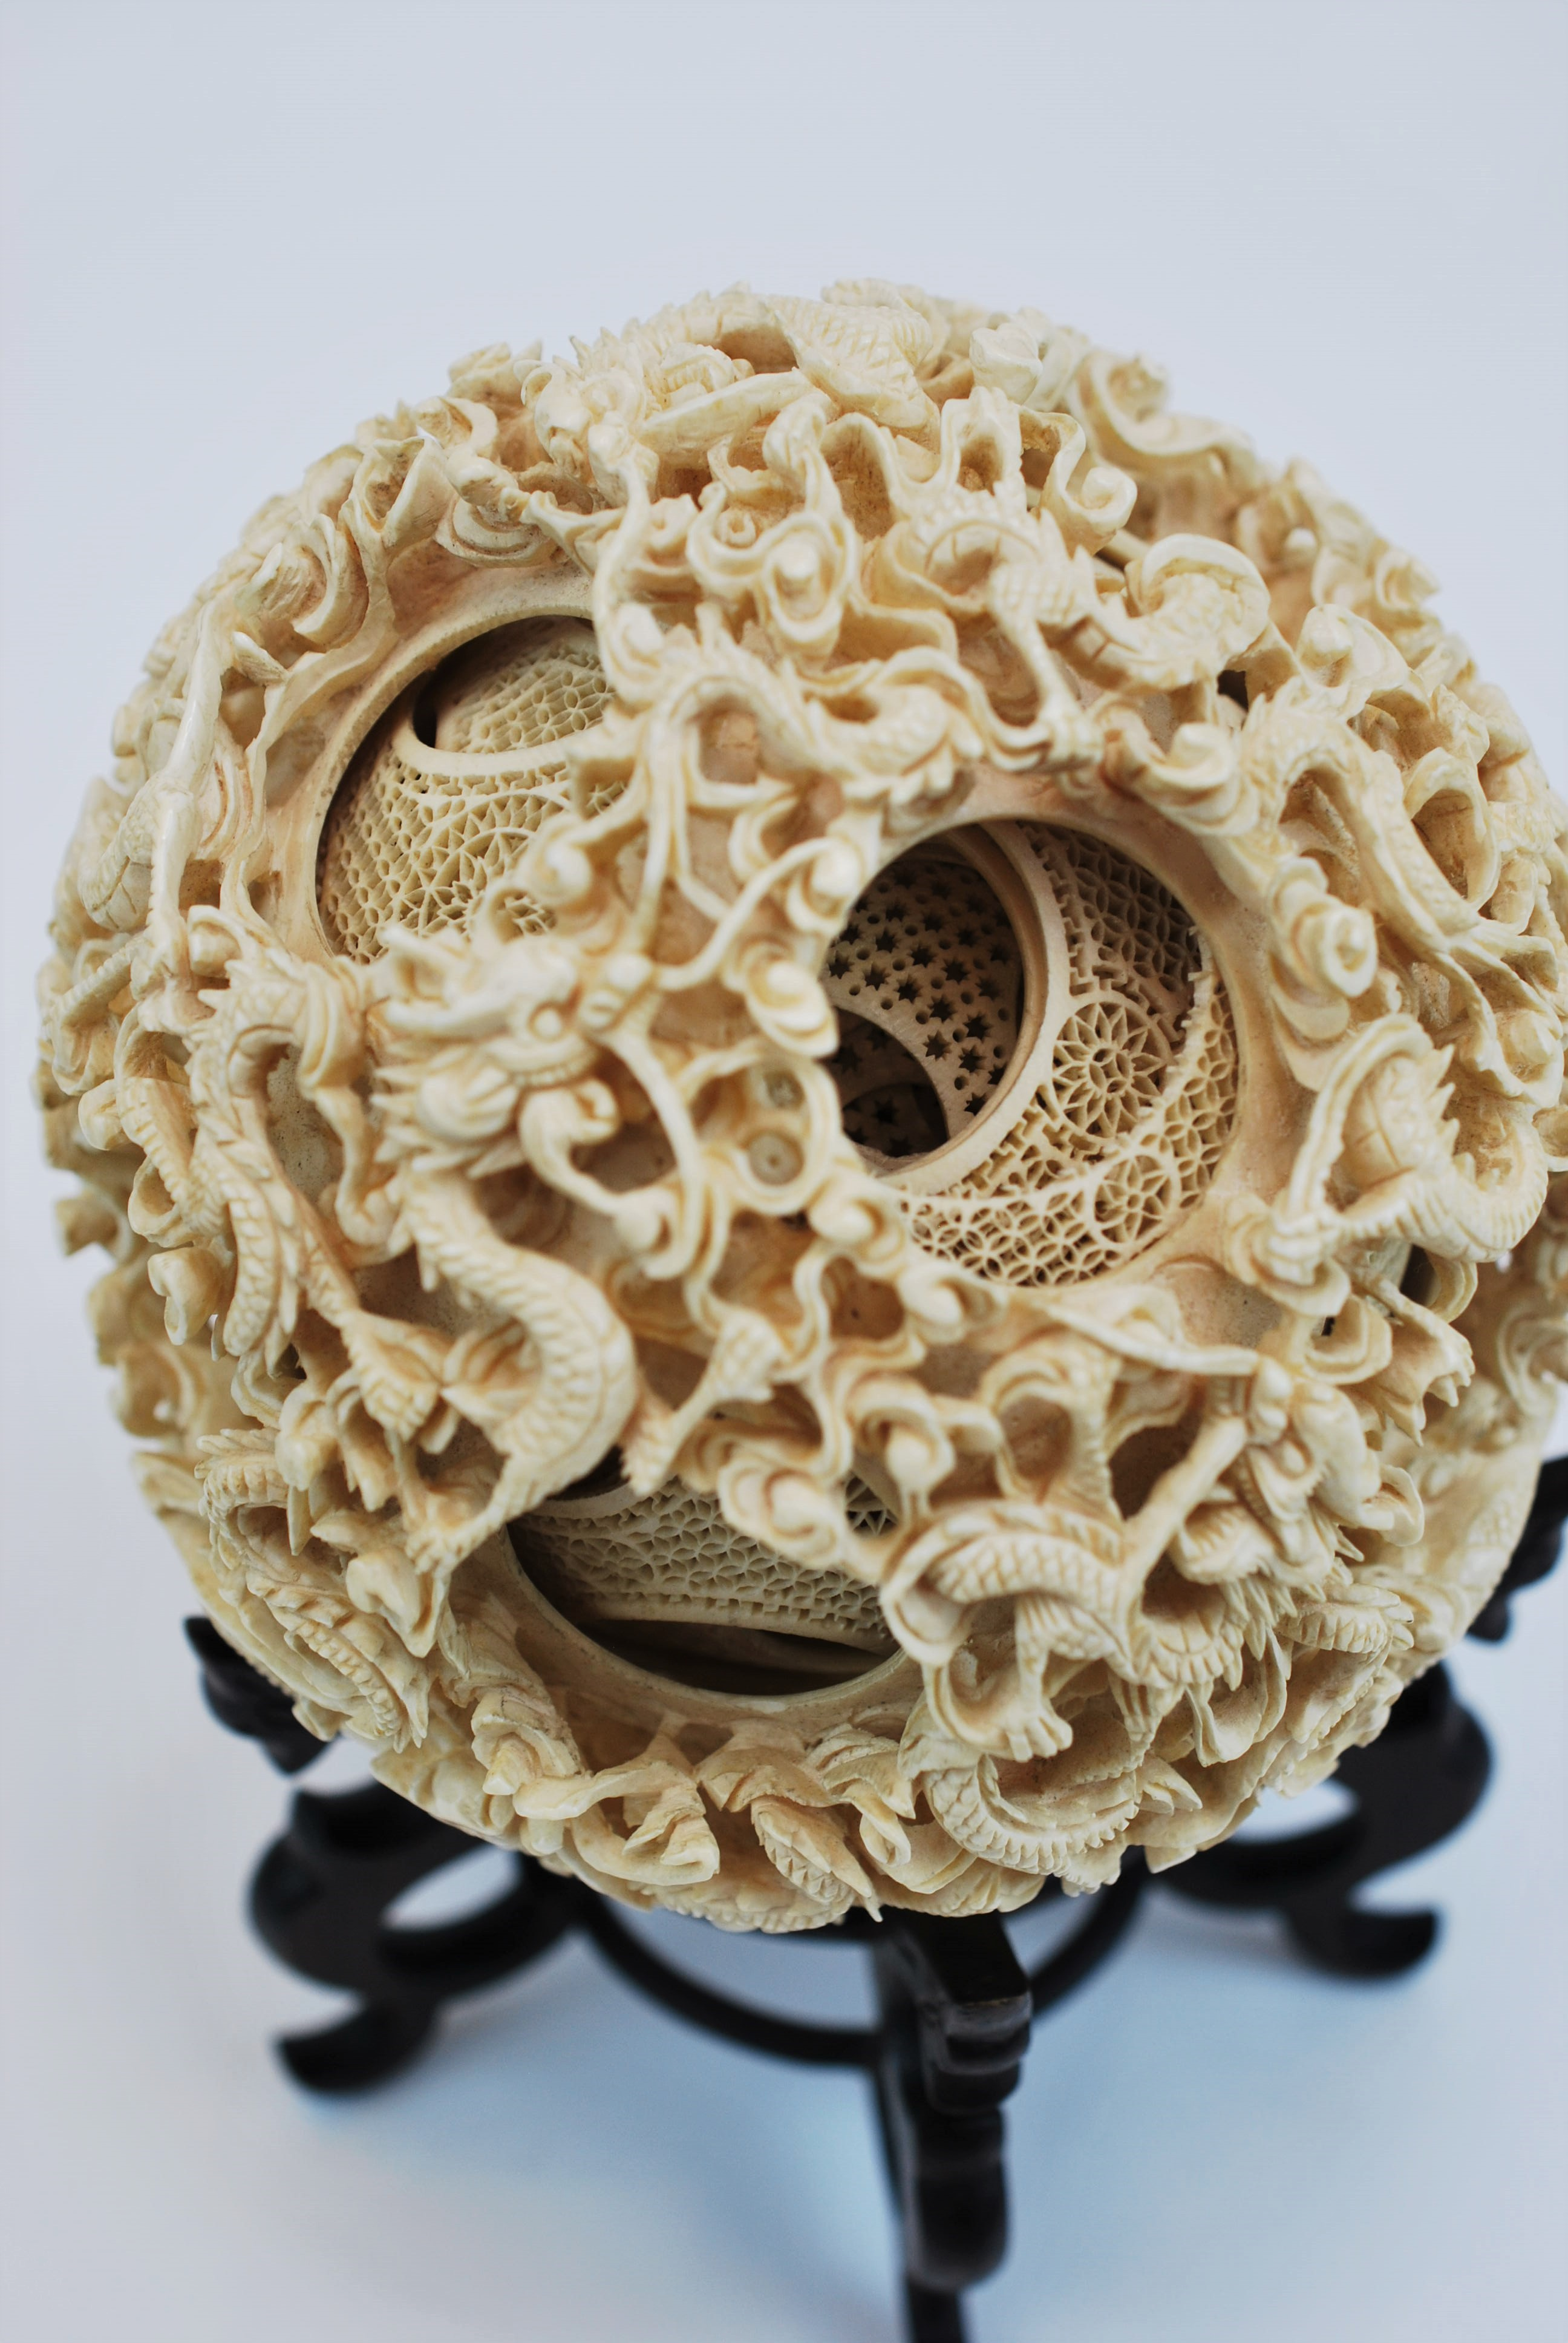 Carved Ivory Puzzle Balls Wonders Of Nature And Artifice